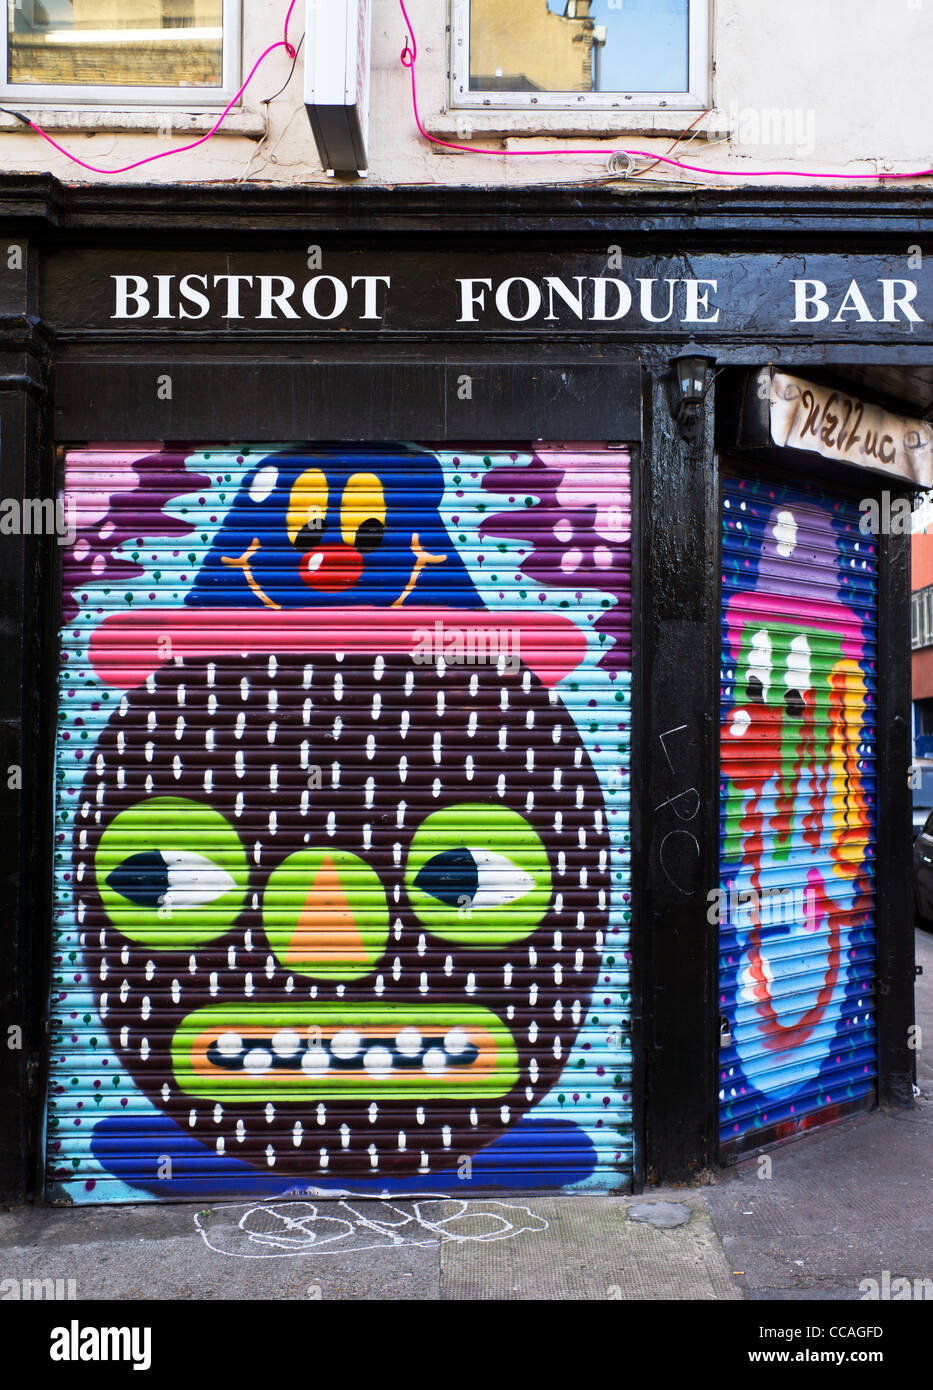 Bistrot Fondue Bar in Shoreditch, early AM with the shutters down - Stock Image